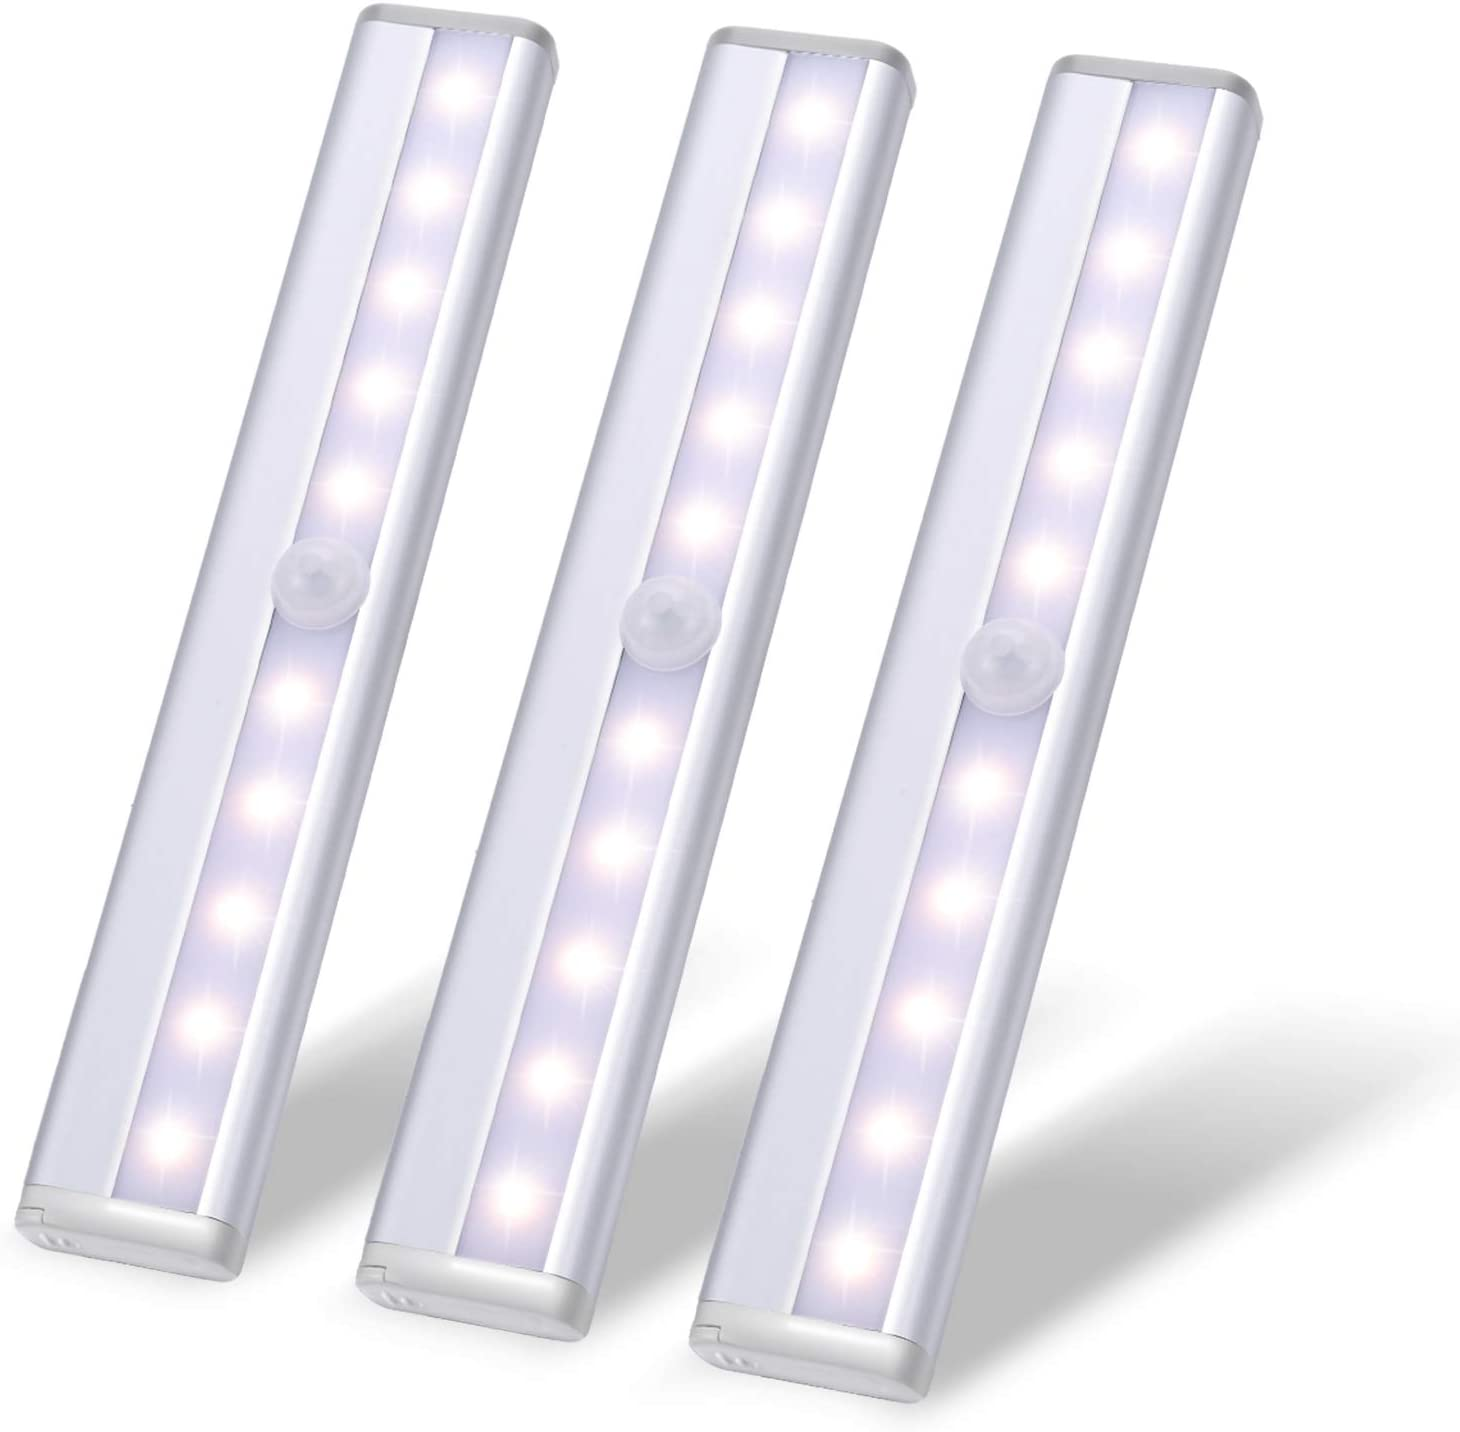 Closet Motion Activated Light,Under Cabinet Lights,Homelife Sensor Nightlight,10LED Wireless Cordless Stick-on Battery Operated Aluminium Alloy Night,for Stairs,Wardrobe,Kitchen,Hallway(3 Pack White)